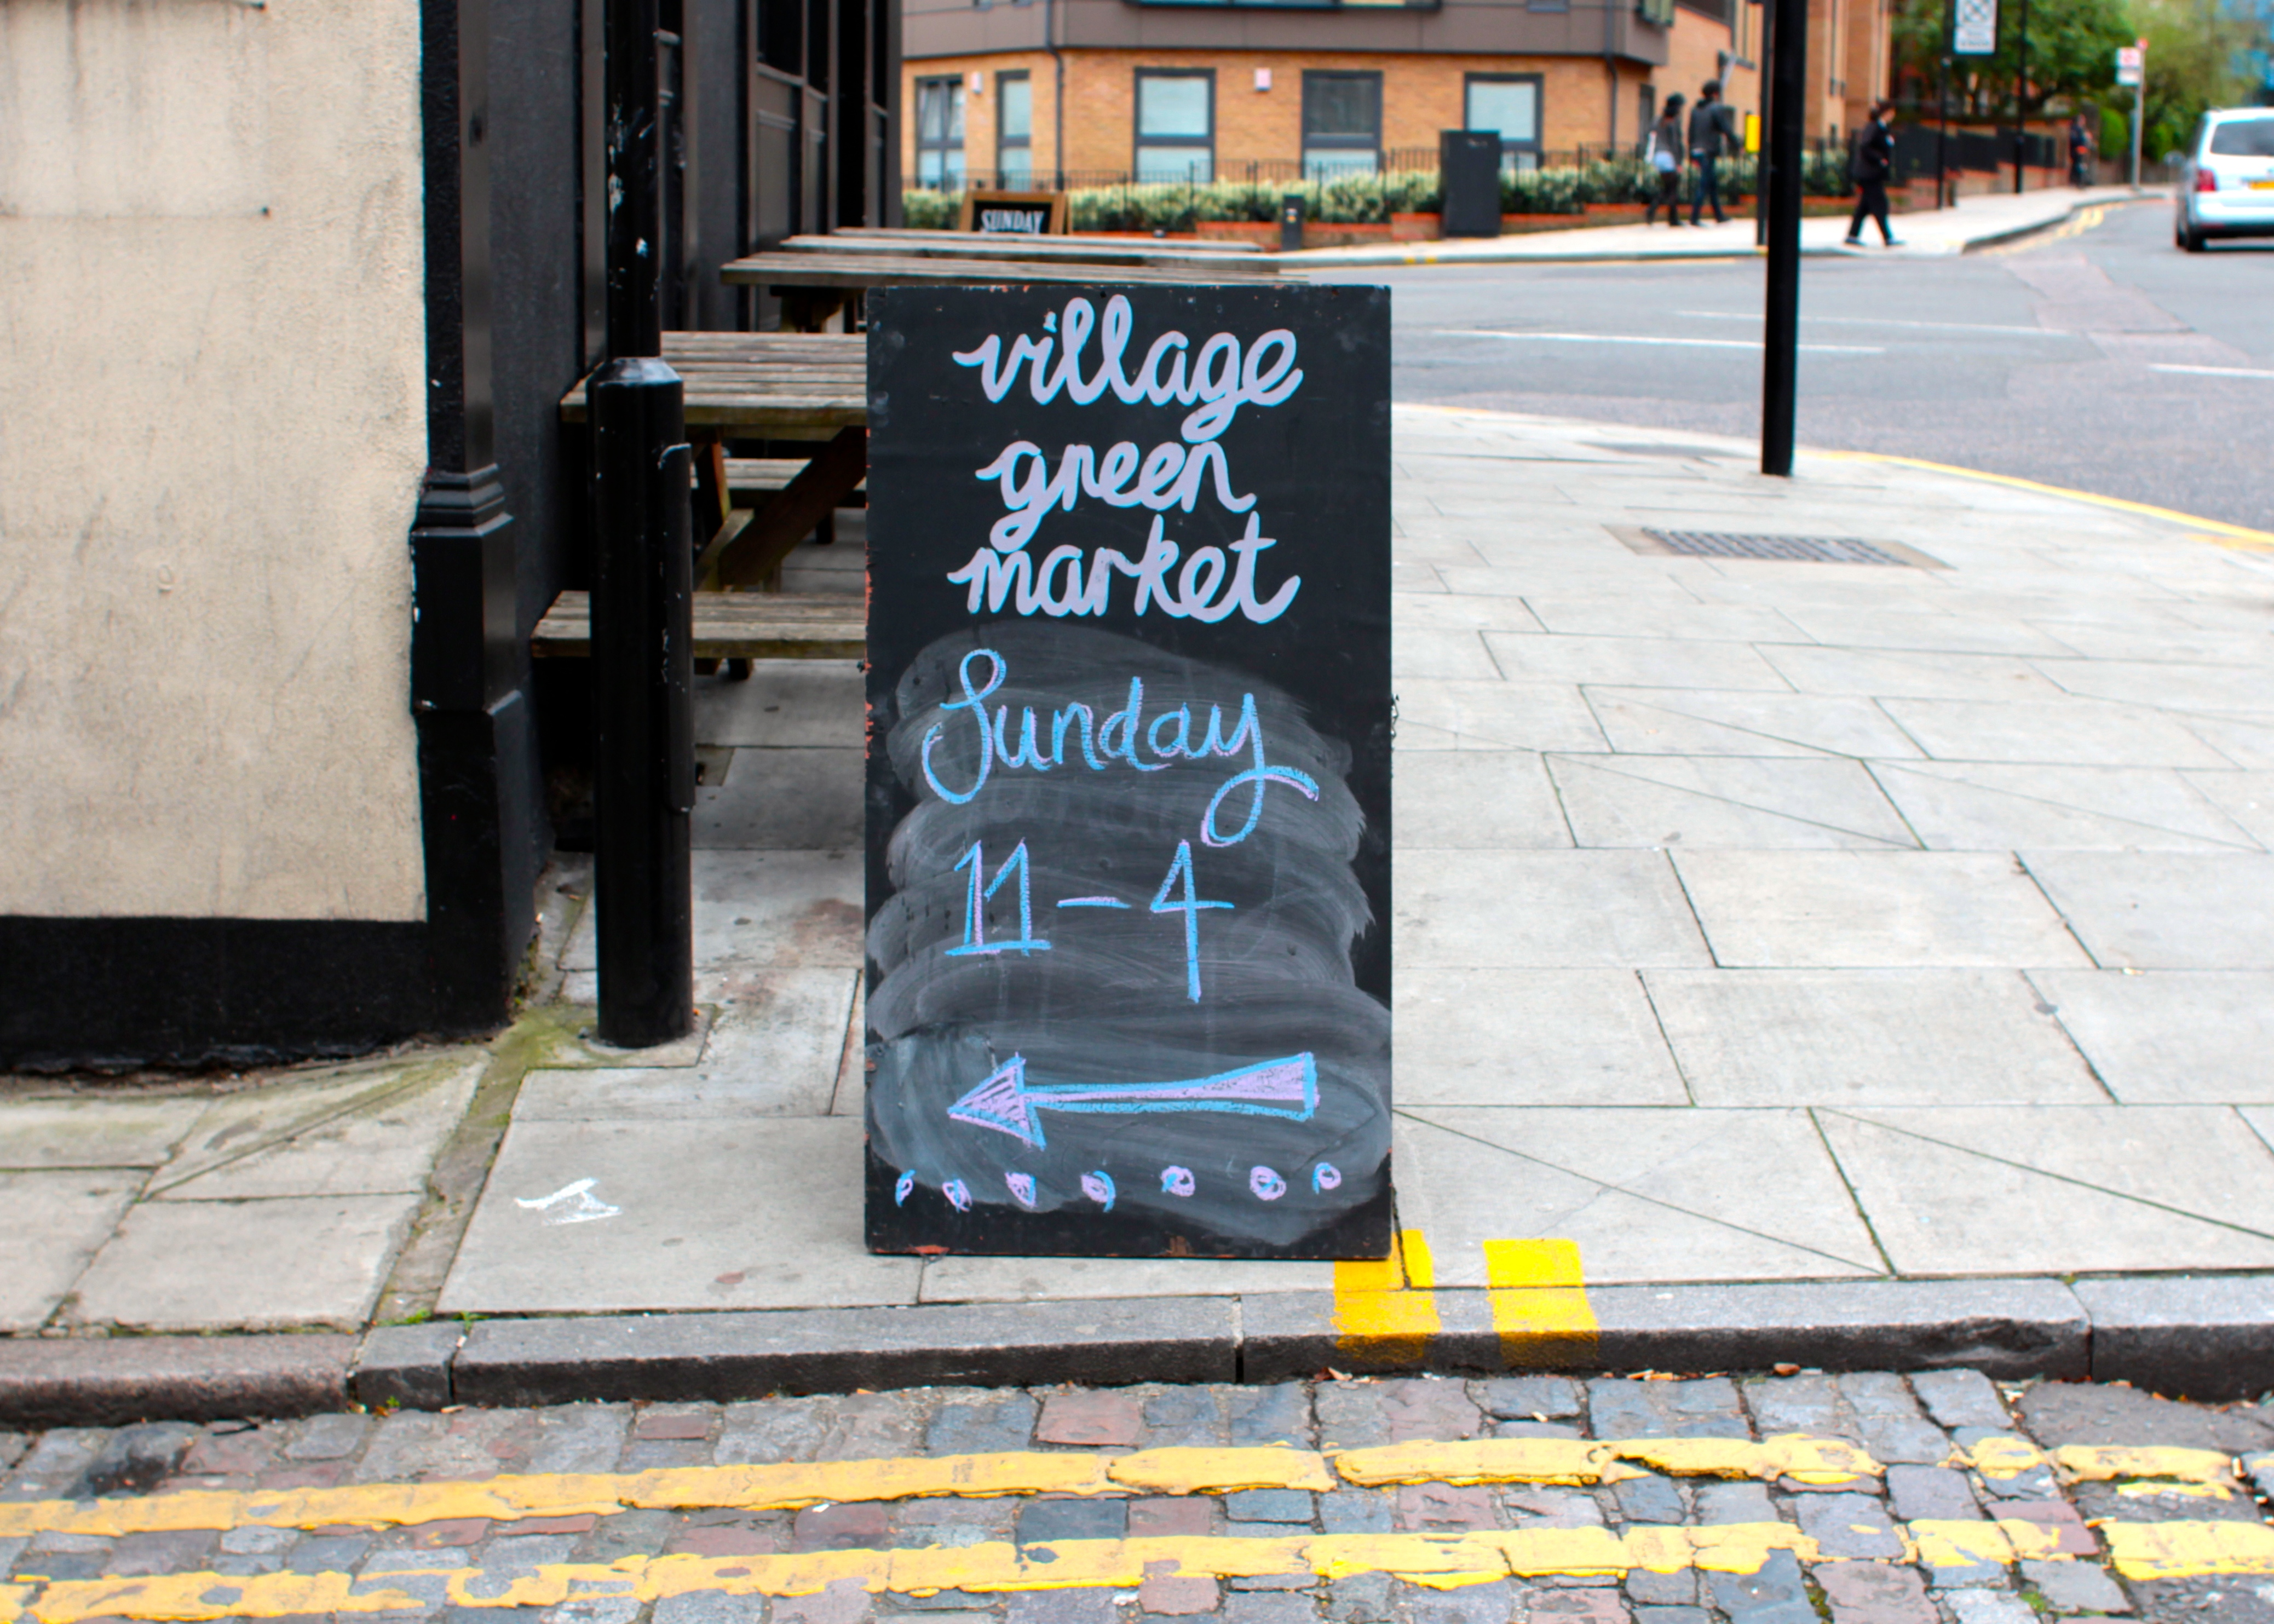 The Village Green Market @ Hackney Downs Studios